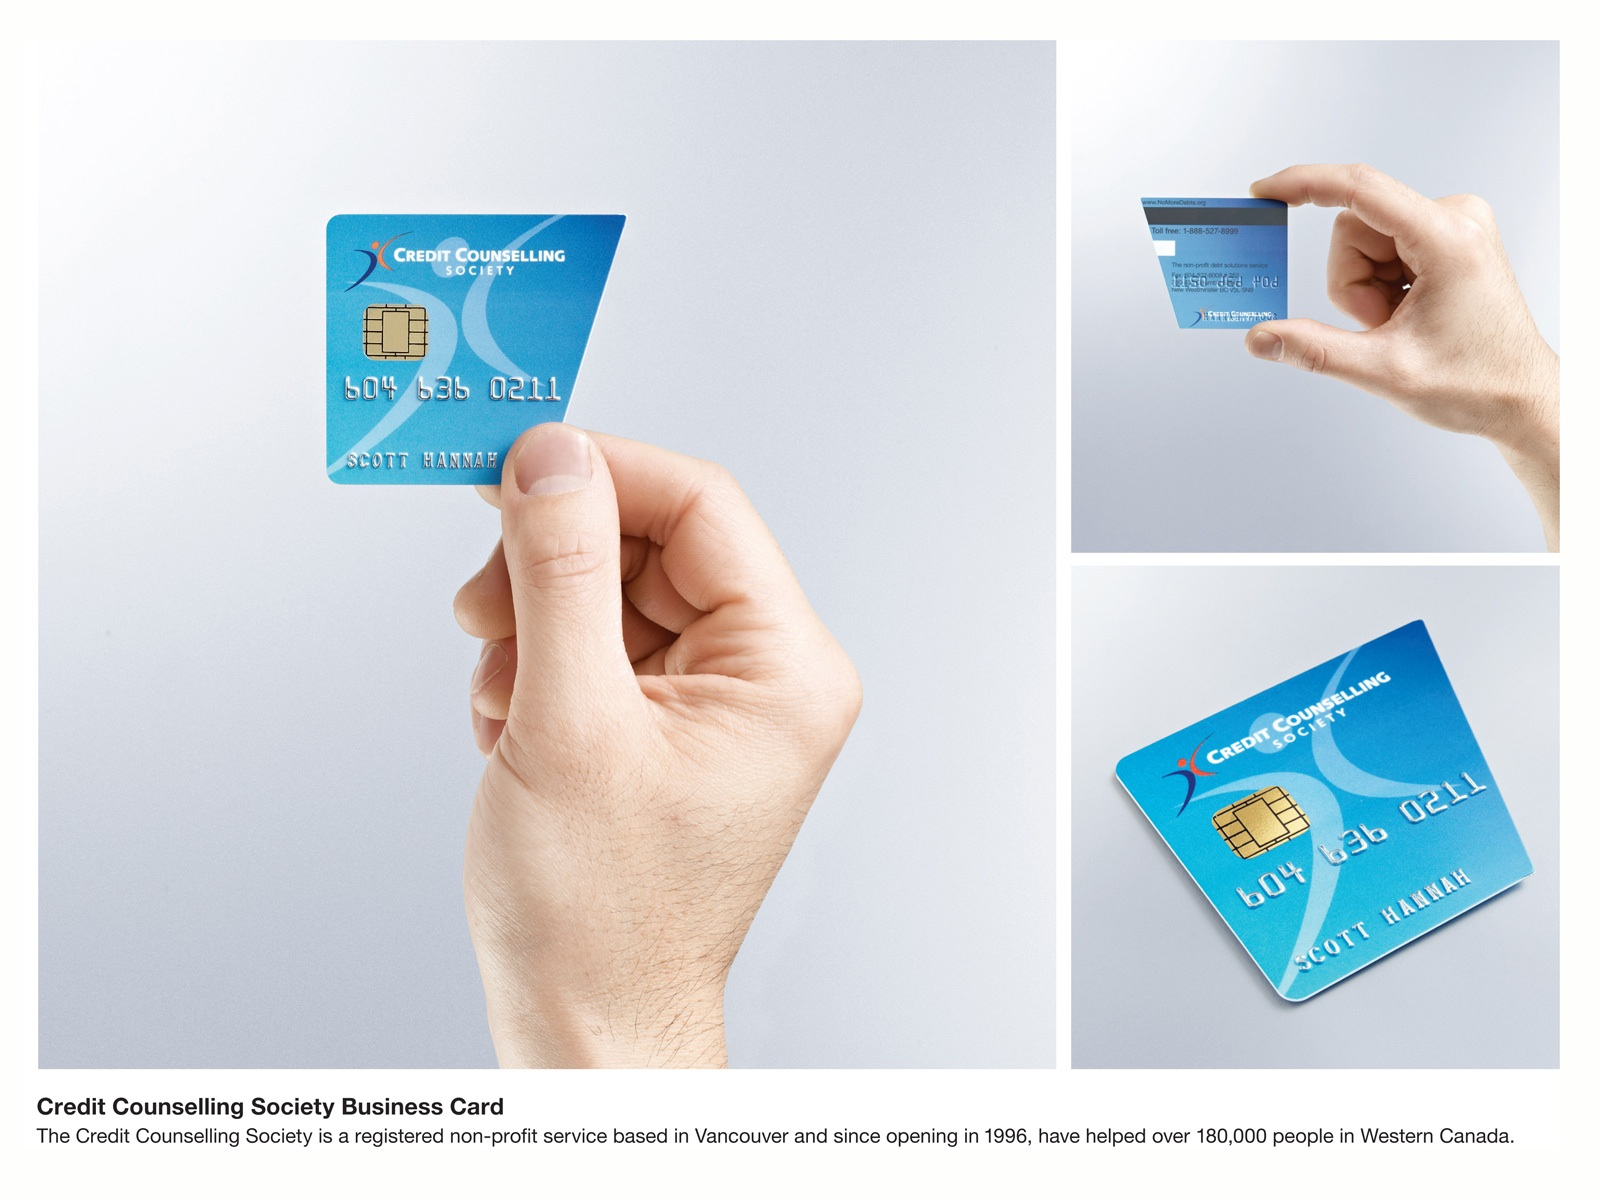 credit counseling business card